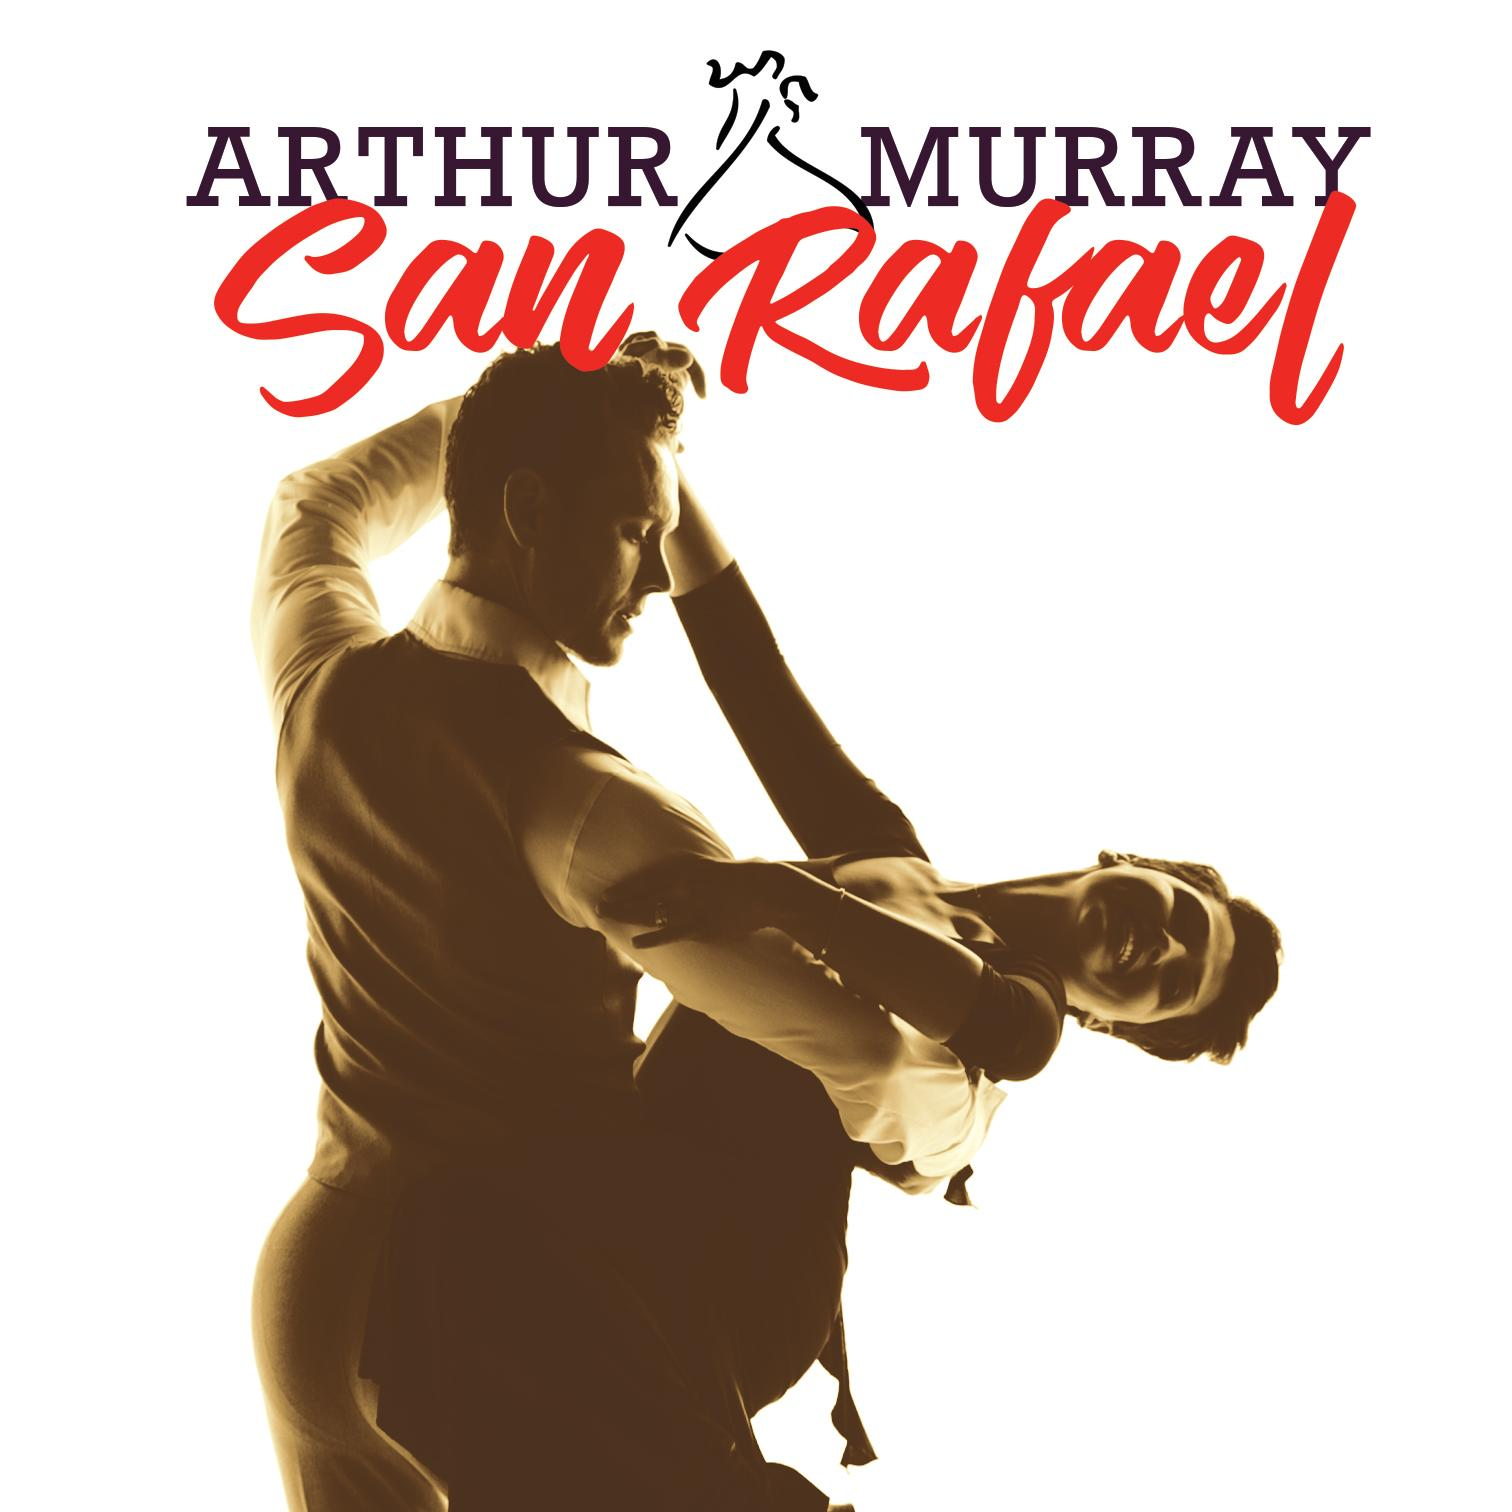 Walk in and dance out at Arthur Murray San Rafael.  No partner or experience necessary.  We can teach you all the popular dances from Salsa and Bachata, to the classics like Waltz and Tango.